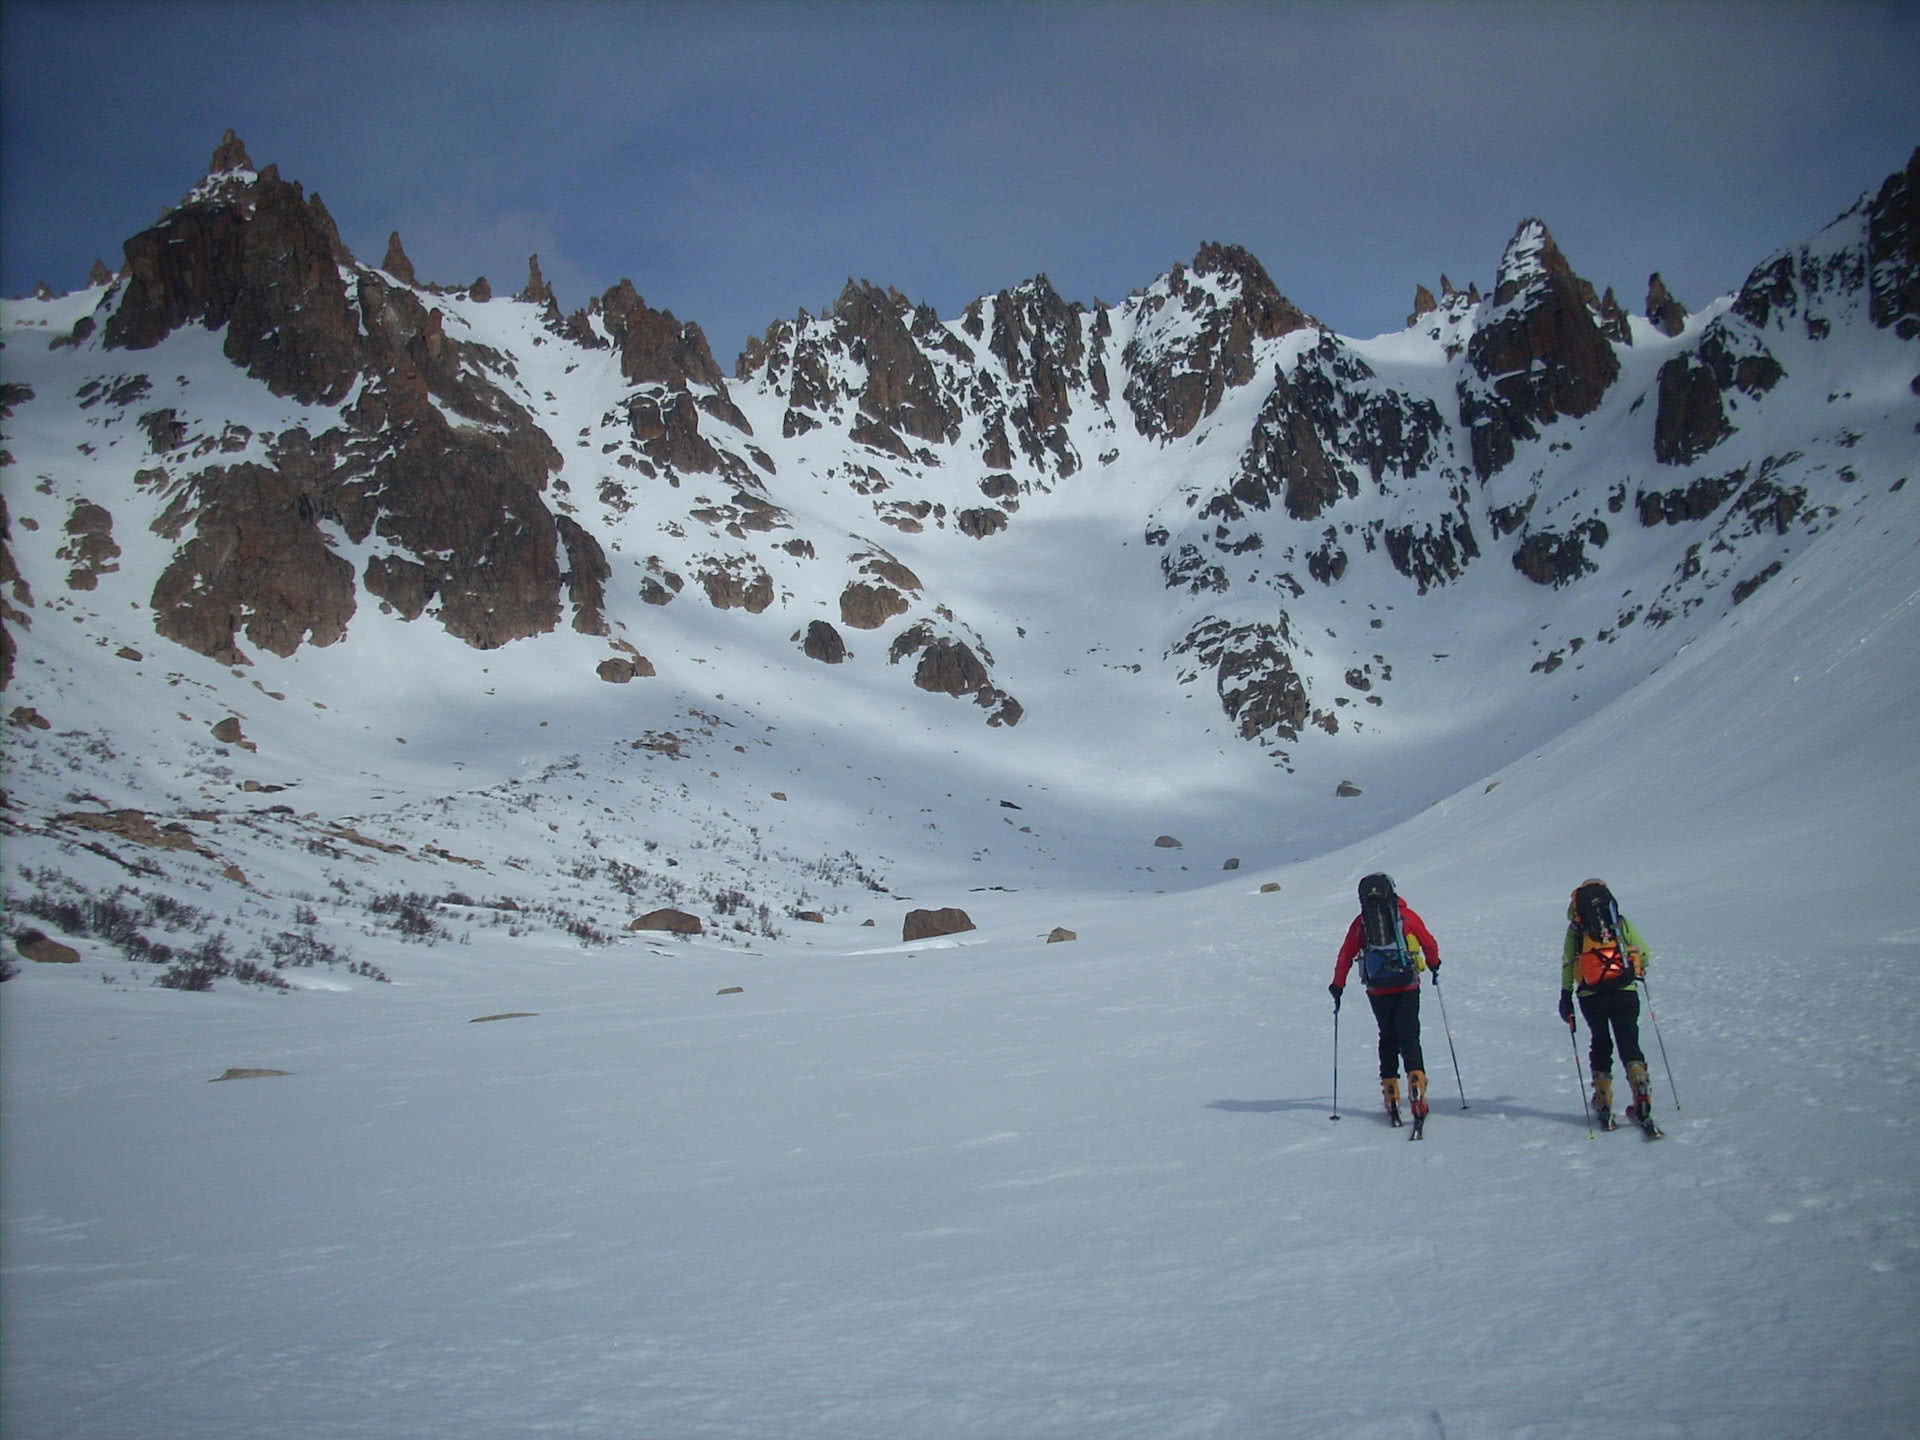 Ski touring Refugio Frey area